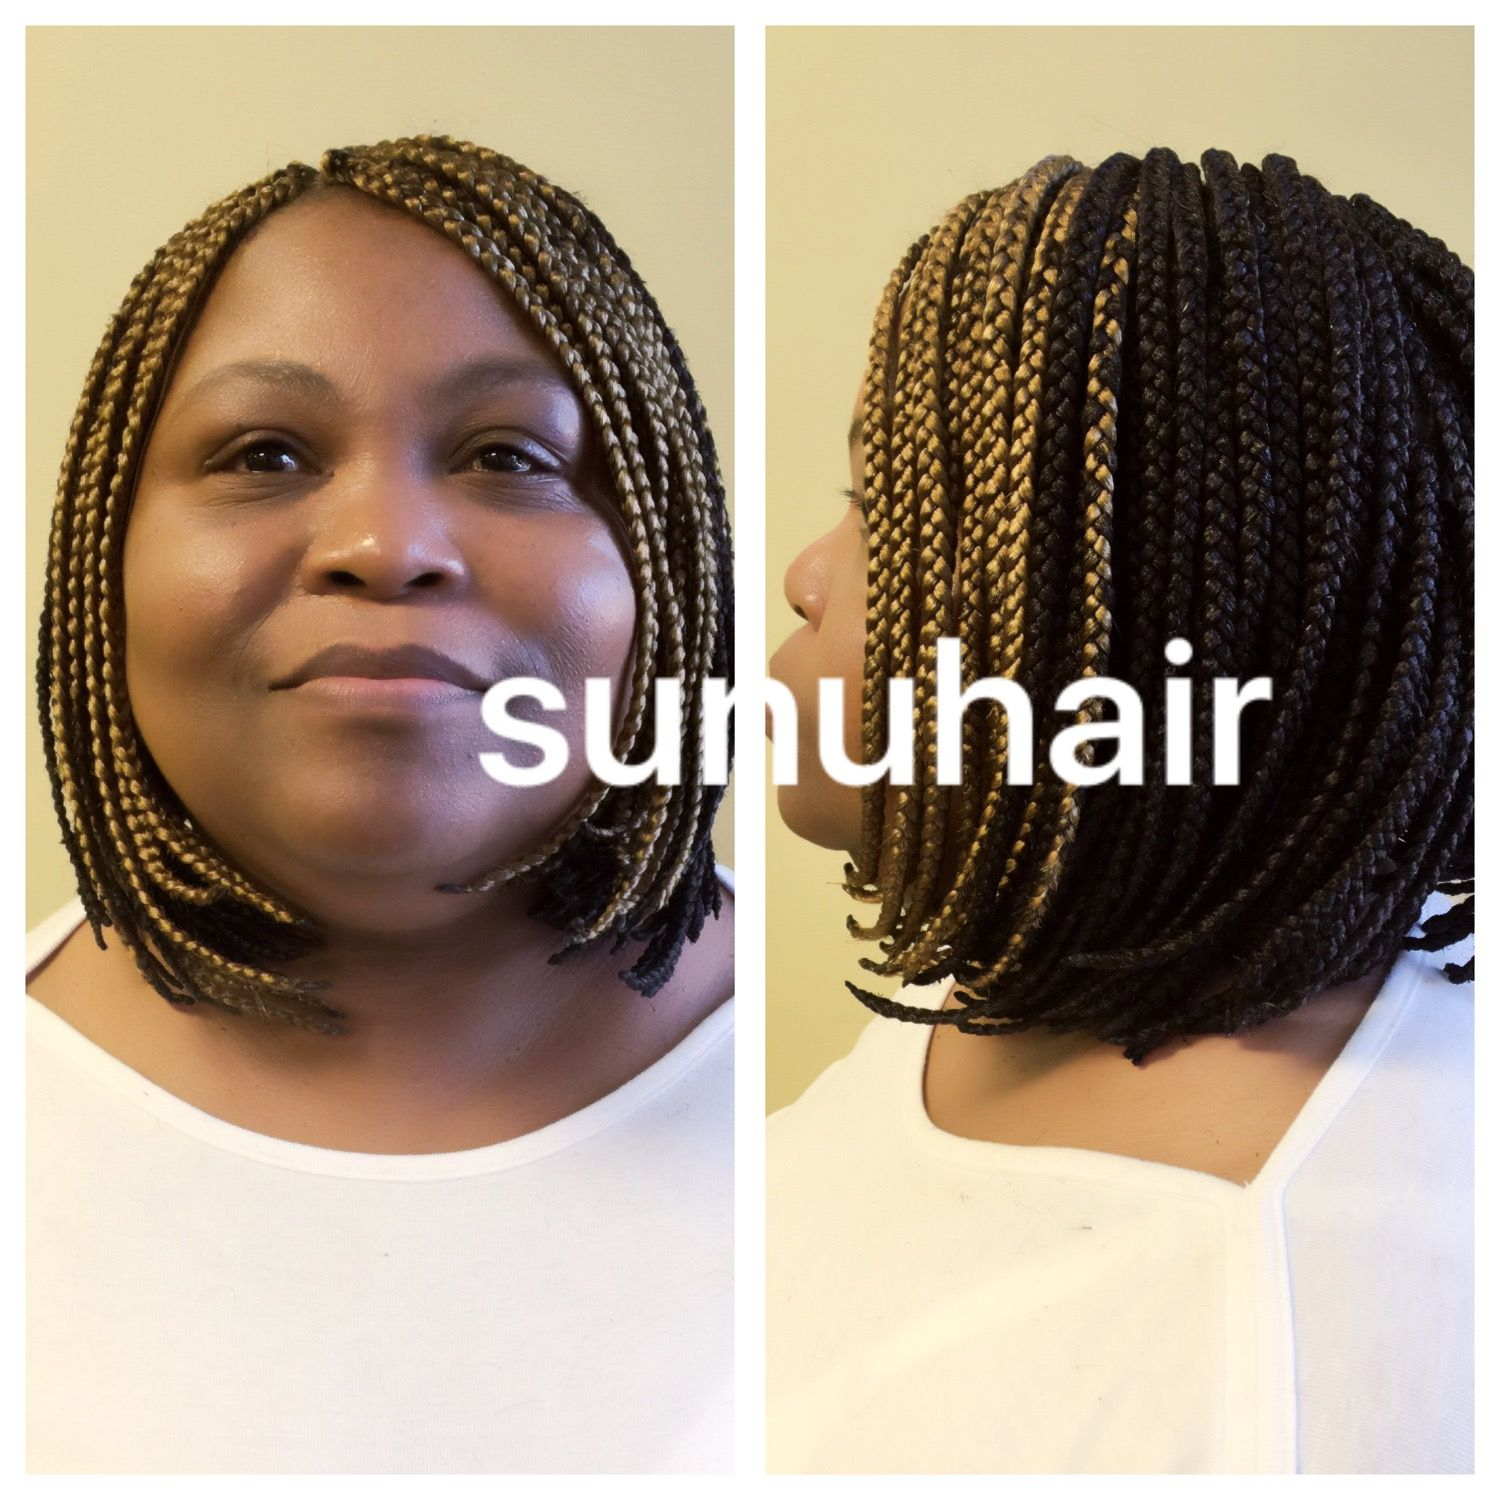 Sunu Hair Braiding African Braids Hairstyles Braided Hairstyles African Hair Braiding Salons